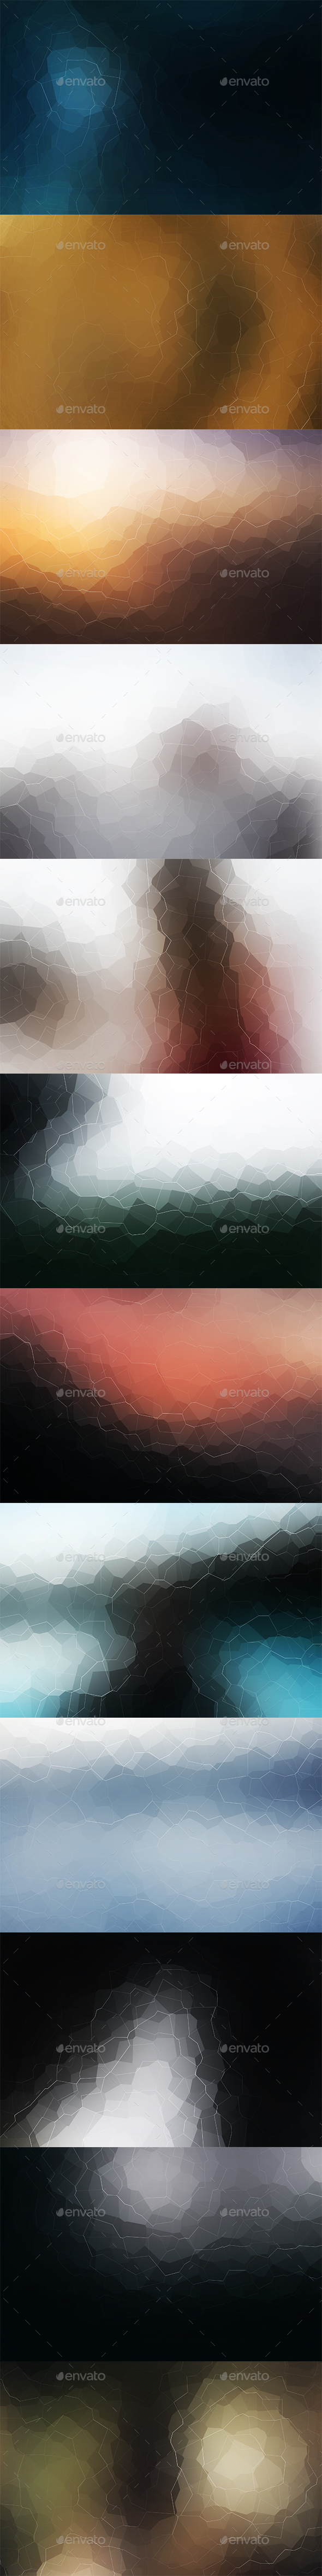 Crystallized Backgrounds Vol5 - Abstract Backgrounds